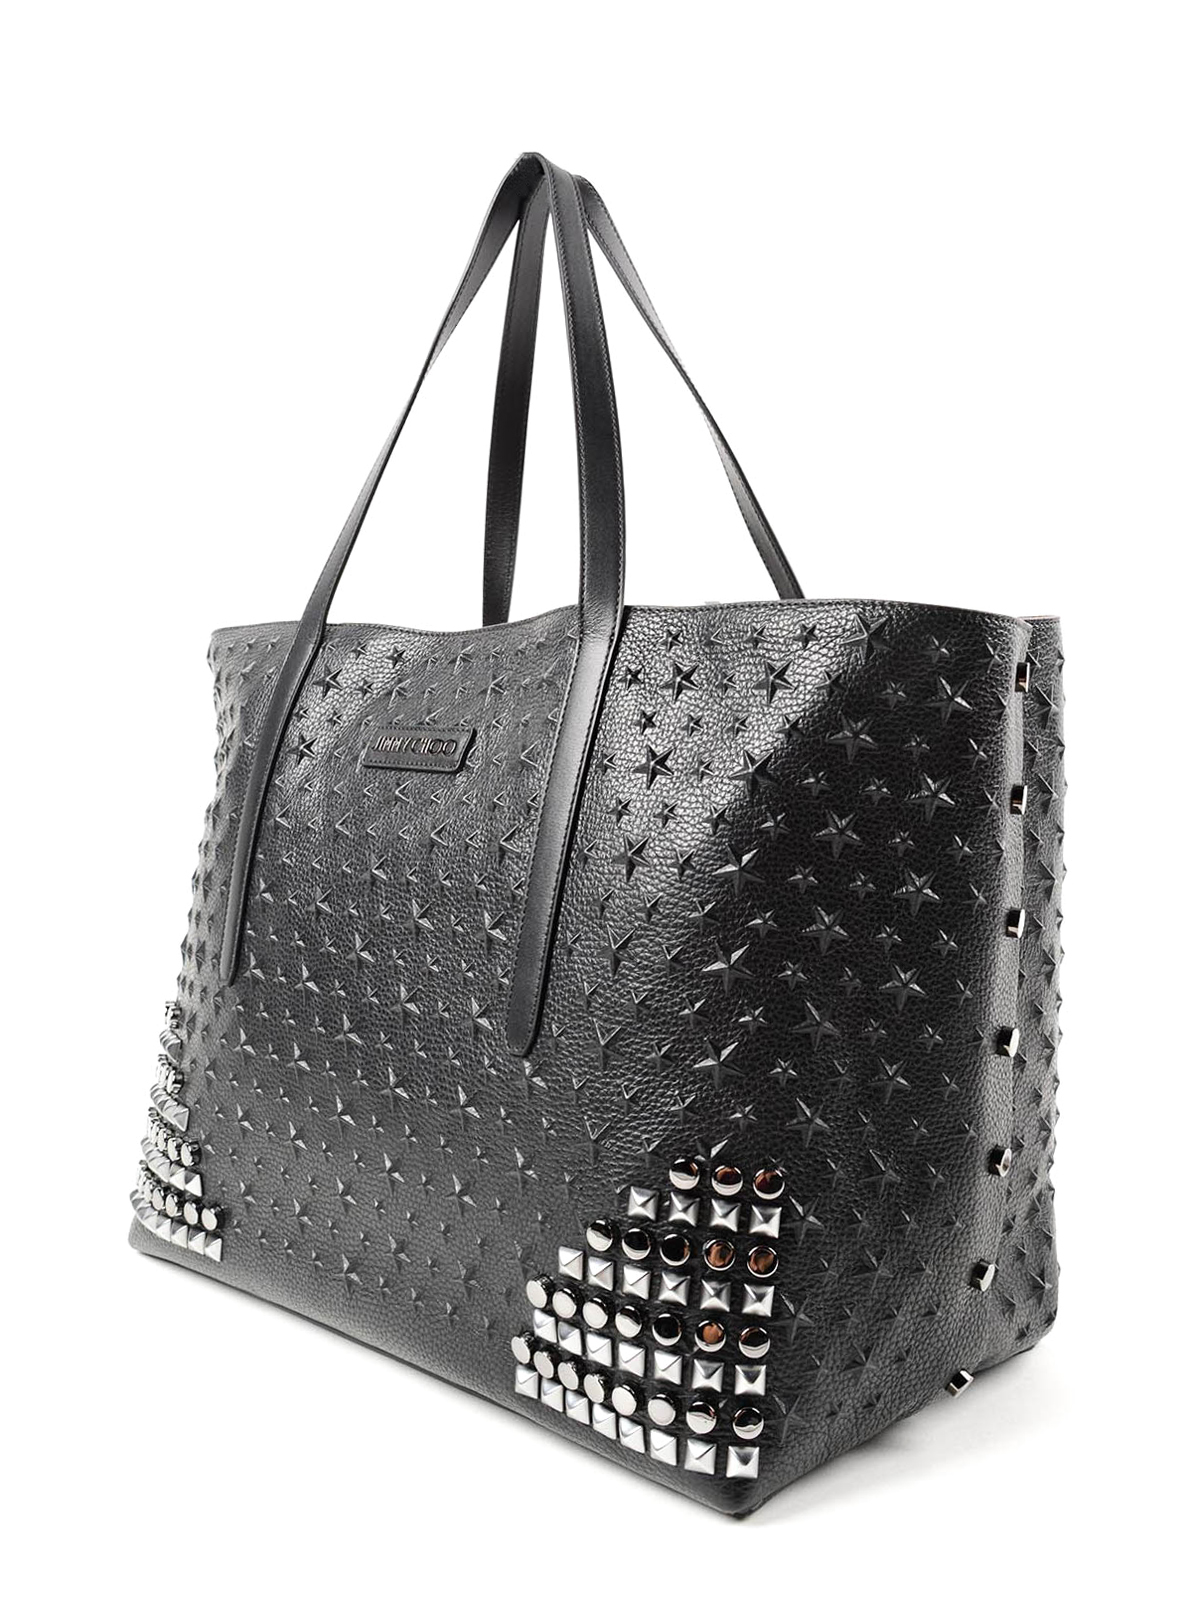 8e45343fac JIMMY CHOO  totes bags online - Pimlico Rock embossed stars tote